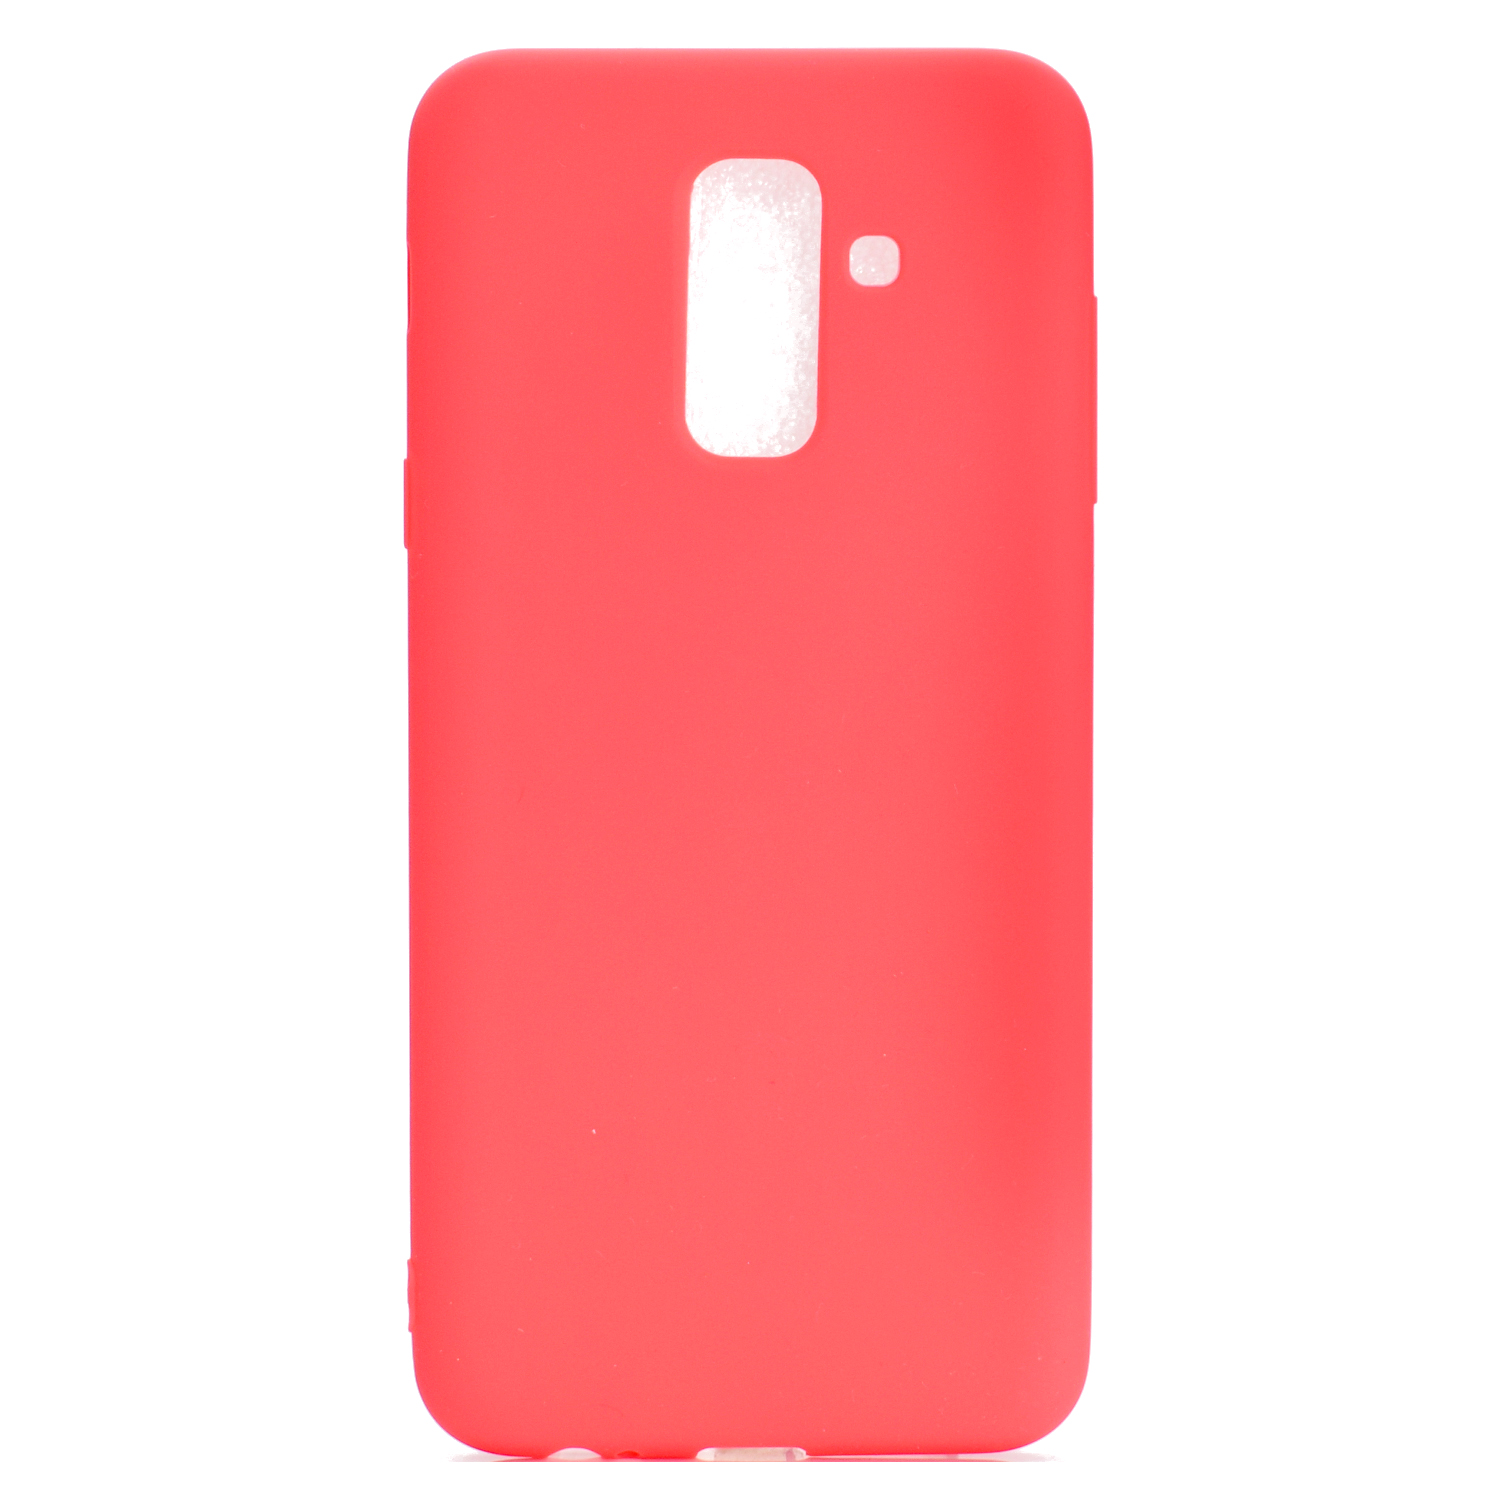 for Samsung A6 plus 2018 Lovely Candy Color Matte TPU Anti-scratch Non-slip Protective Cover Back Case red